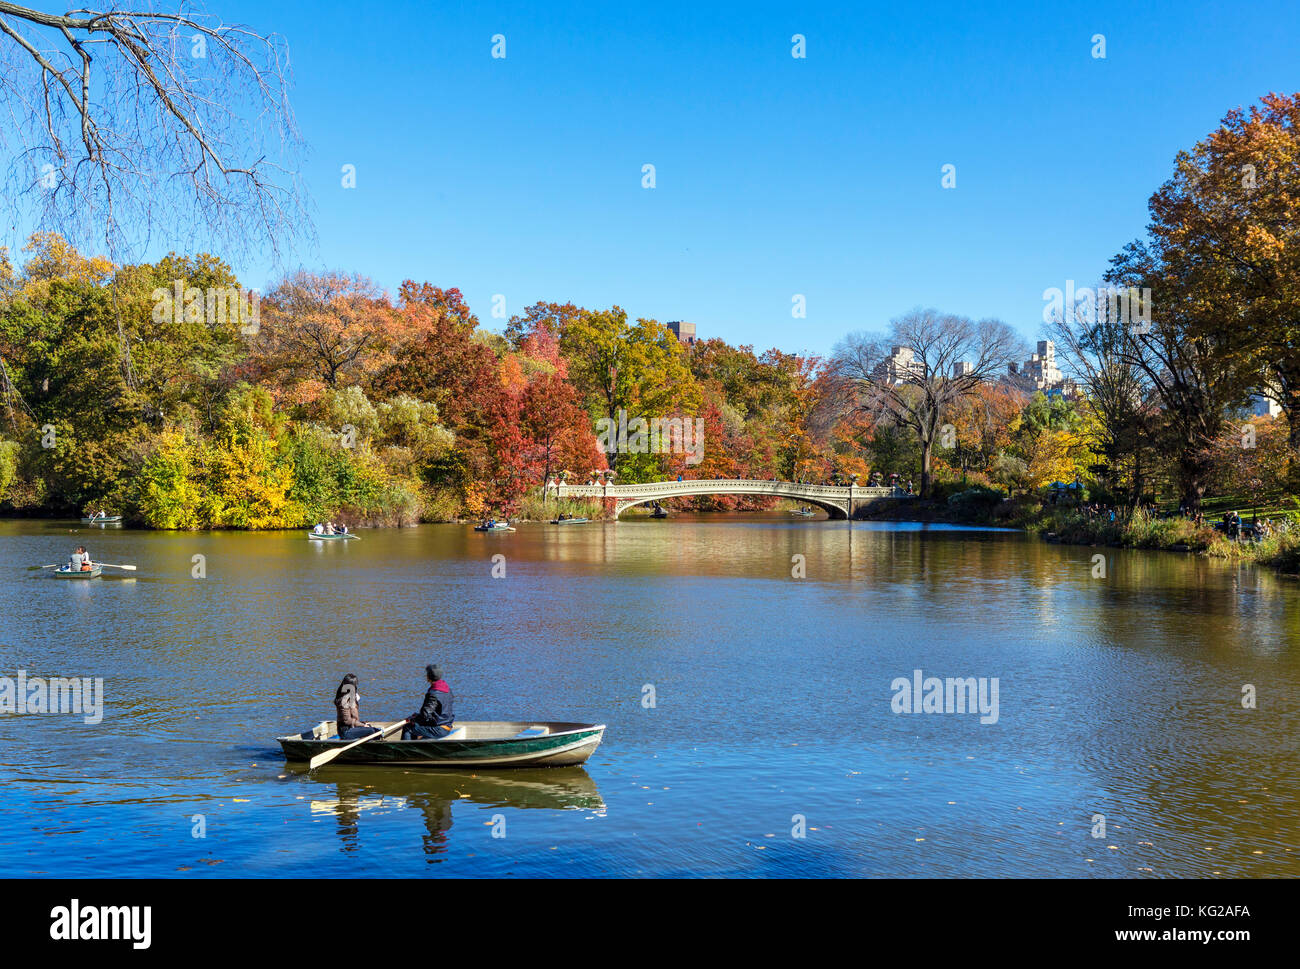 Boating on The Lake in Central Park looking towards Bow Bridge, New York City, NY, USA - Stock Image